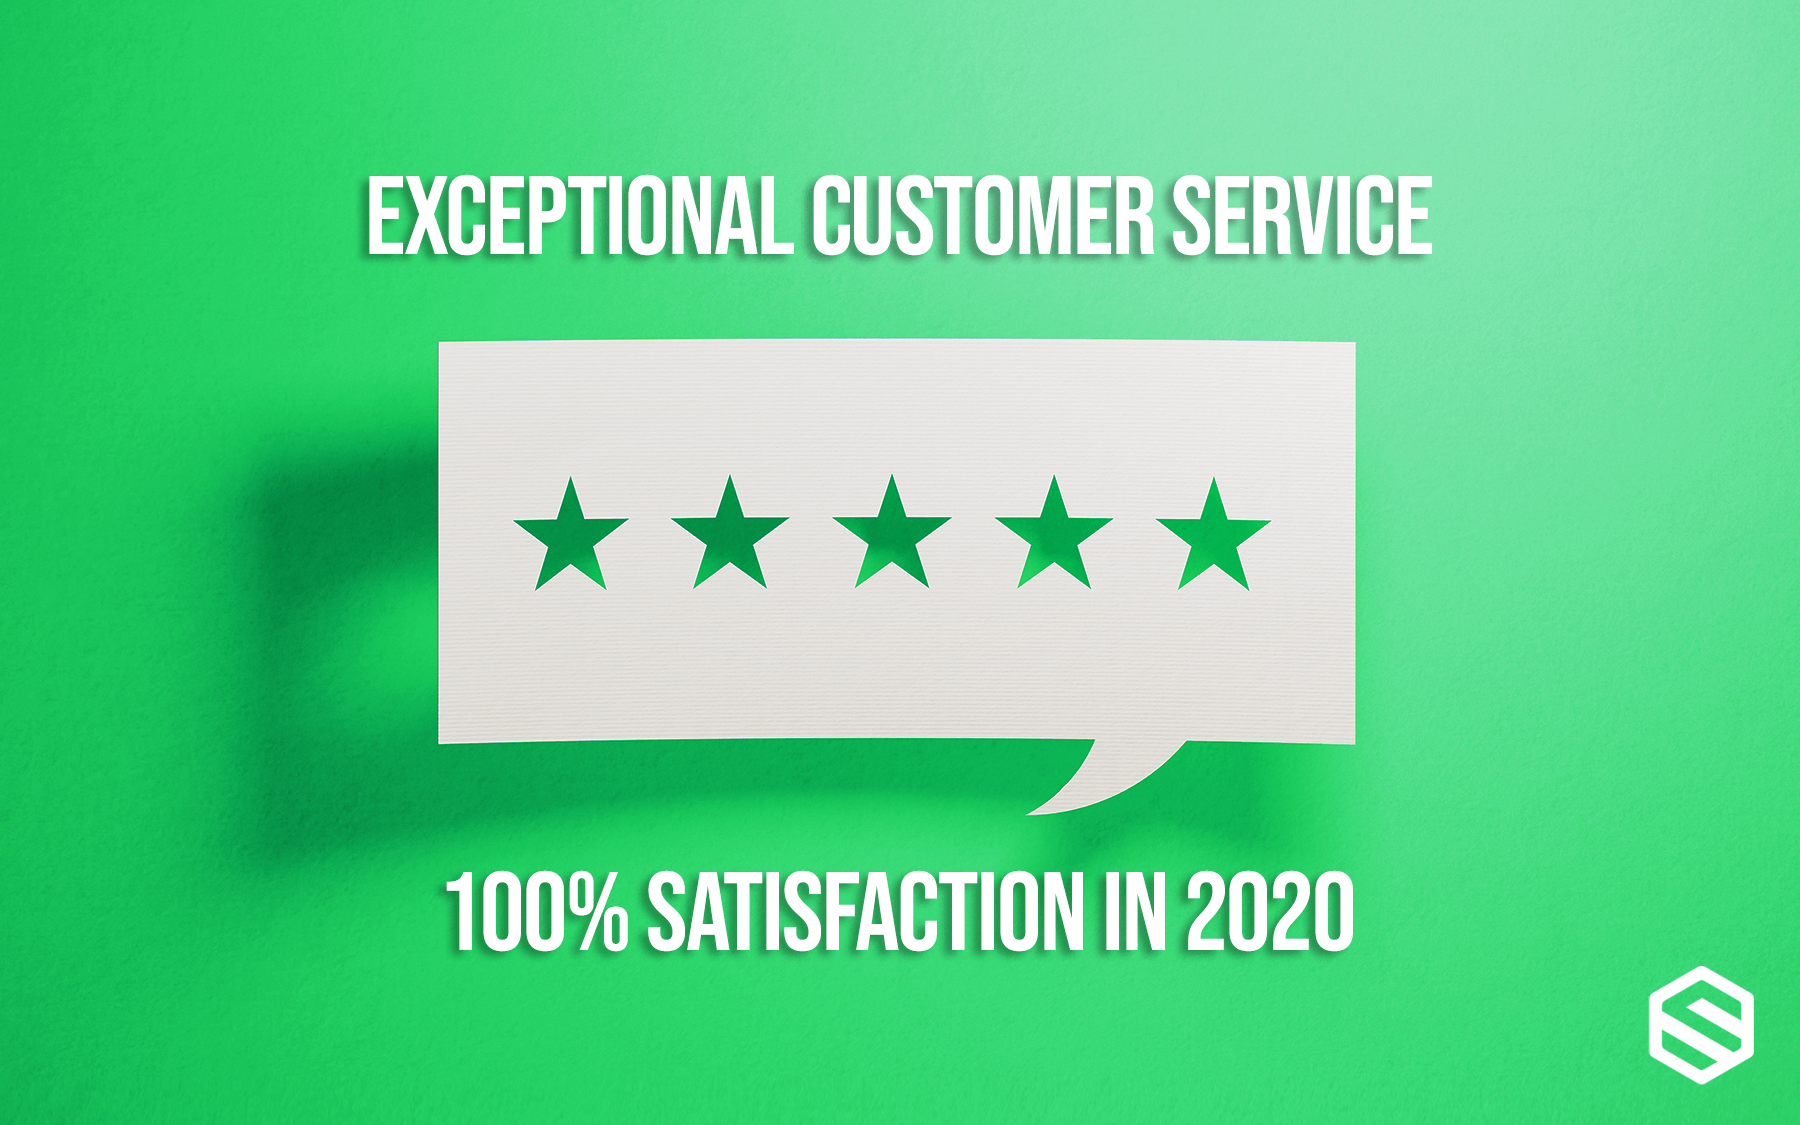 100% Satisfaction Rating